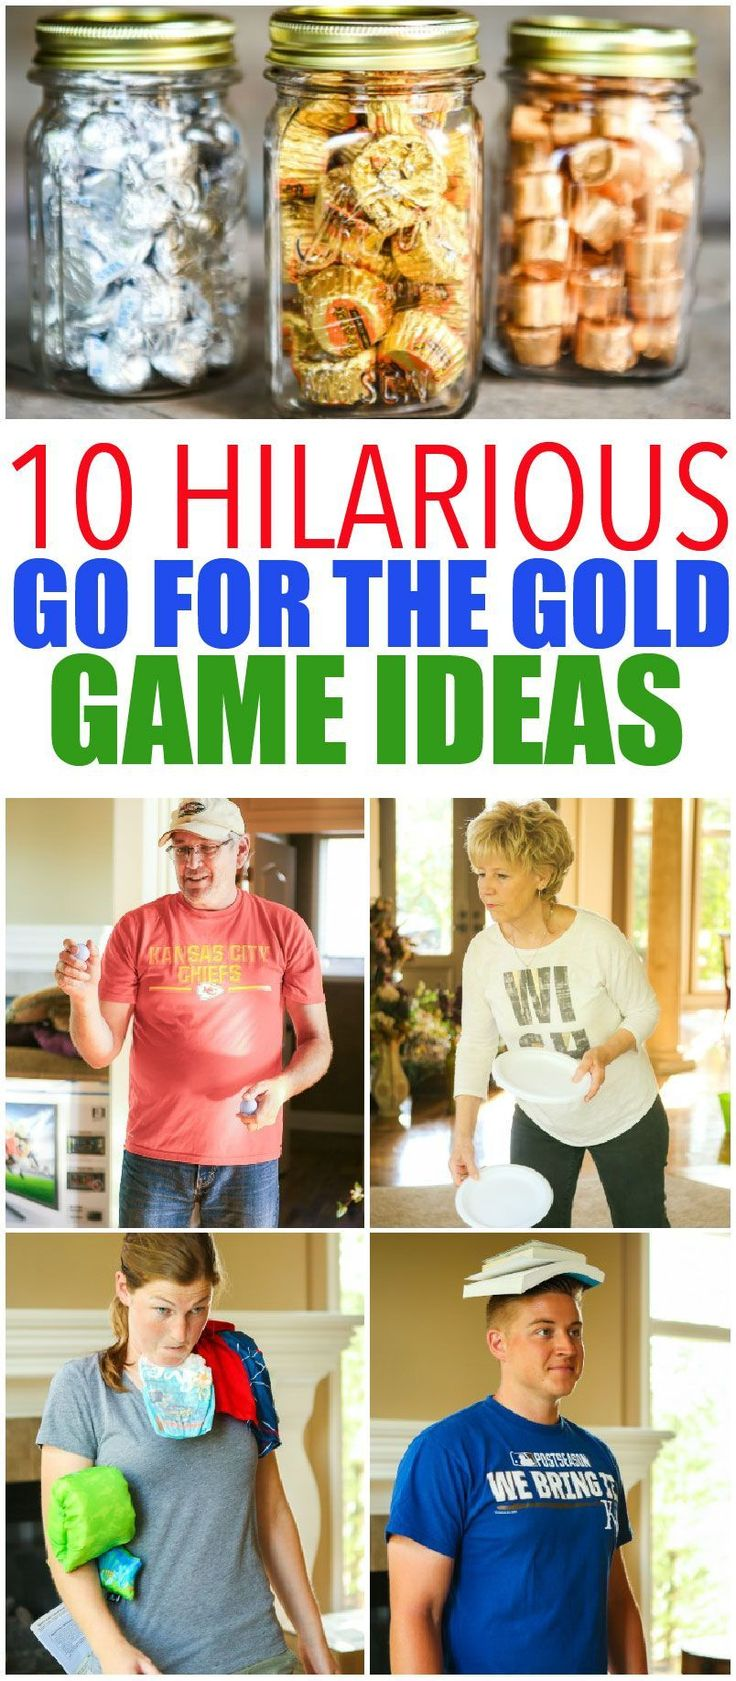 10 hilarious Olympics party games that are perfect for getting ready for the 2016 summer games in Rio! Fun for kids, for teens, and even for adults! Tons of simple minute to win it style activities that use things around the house. And for your winners? Chocolate Olympic medals! I can't wait to try the household triathlon. #christmasgamesforadults